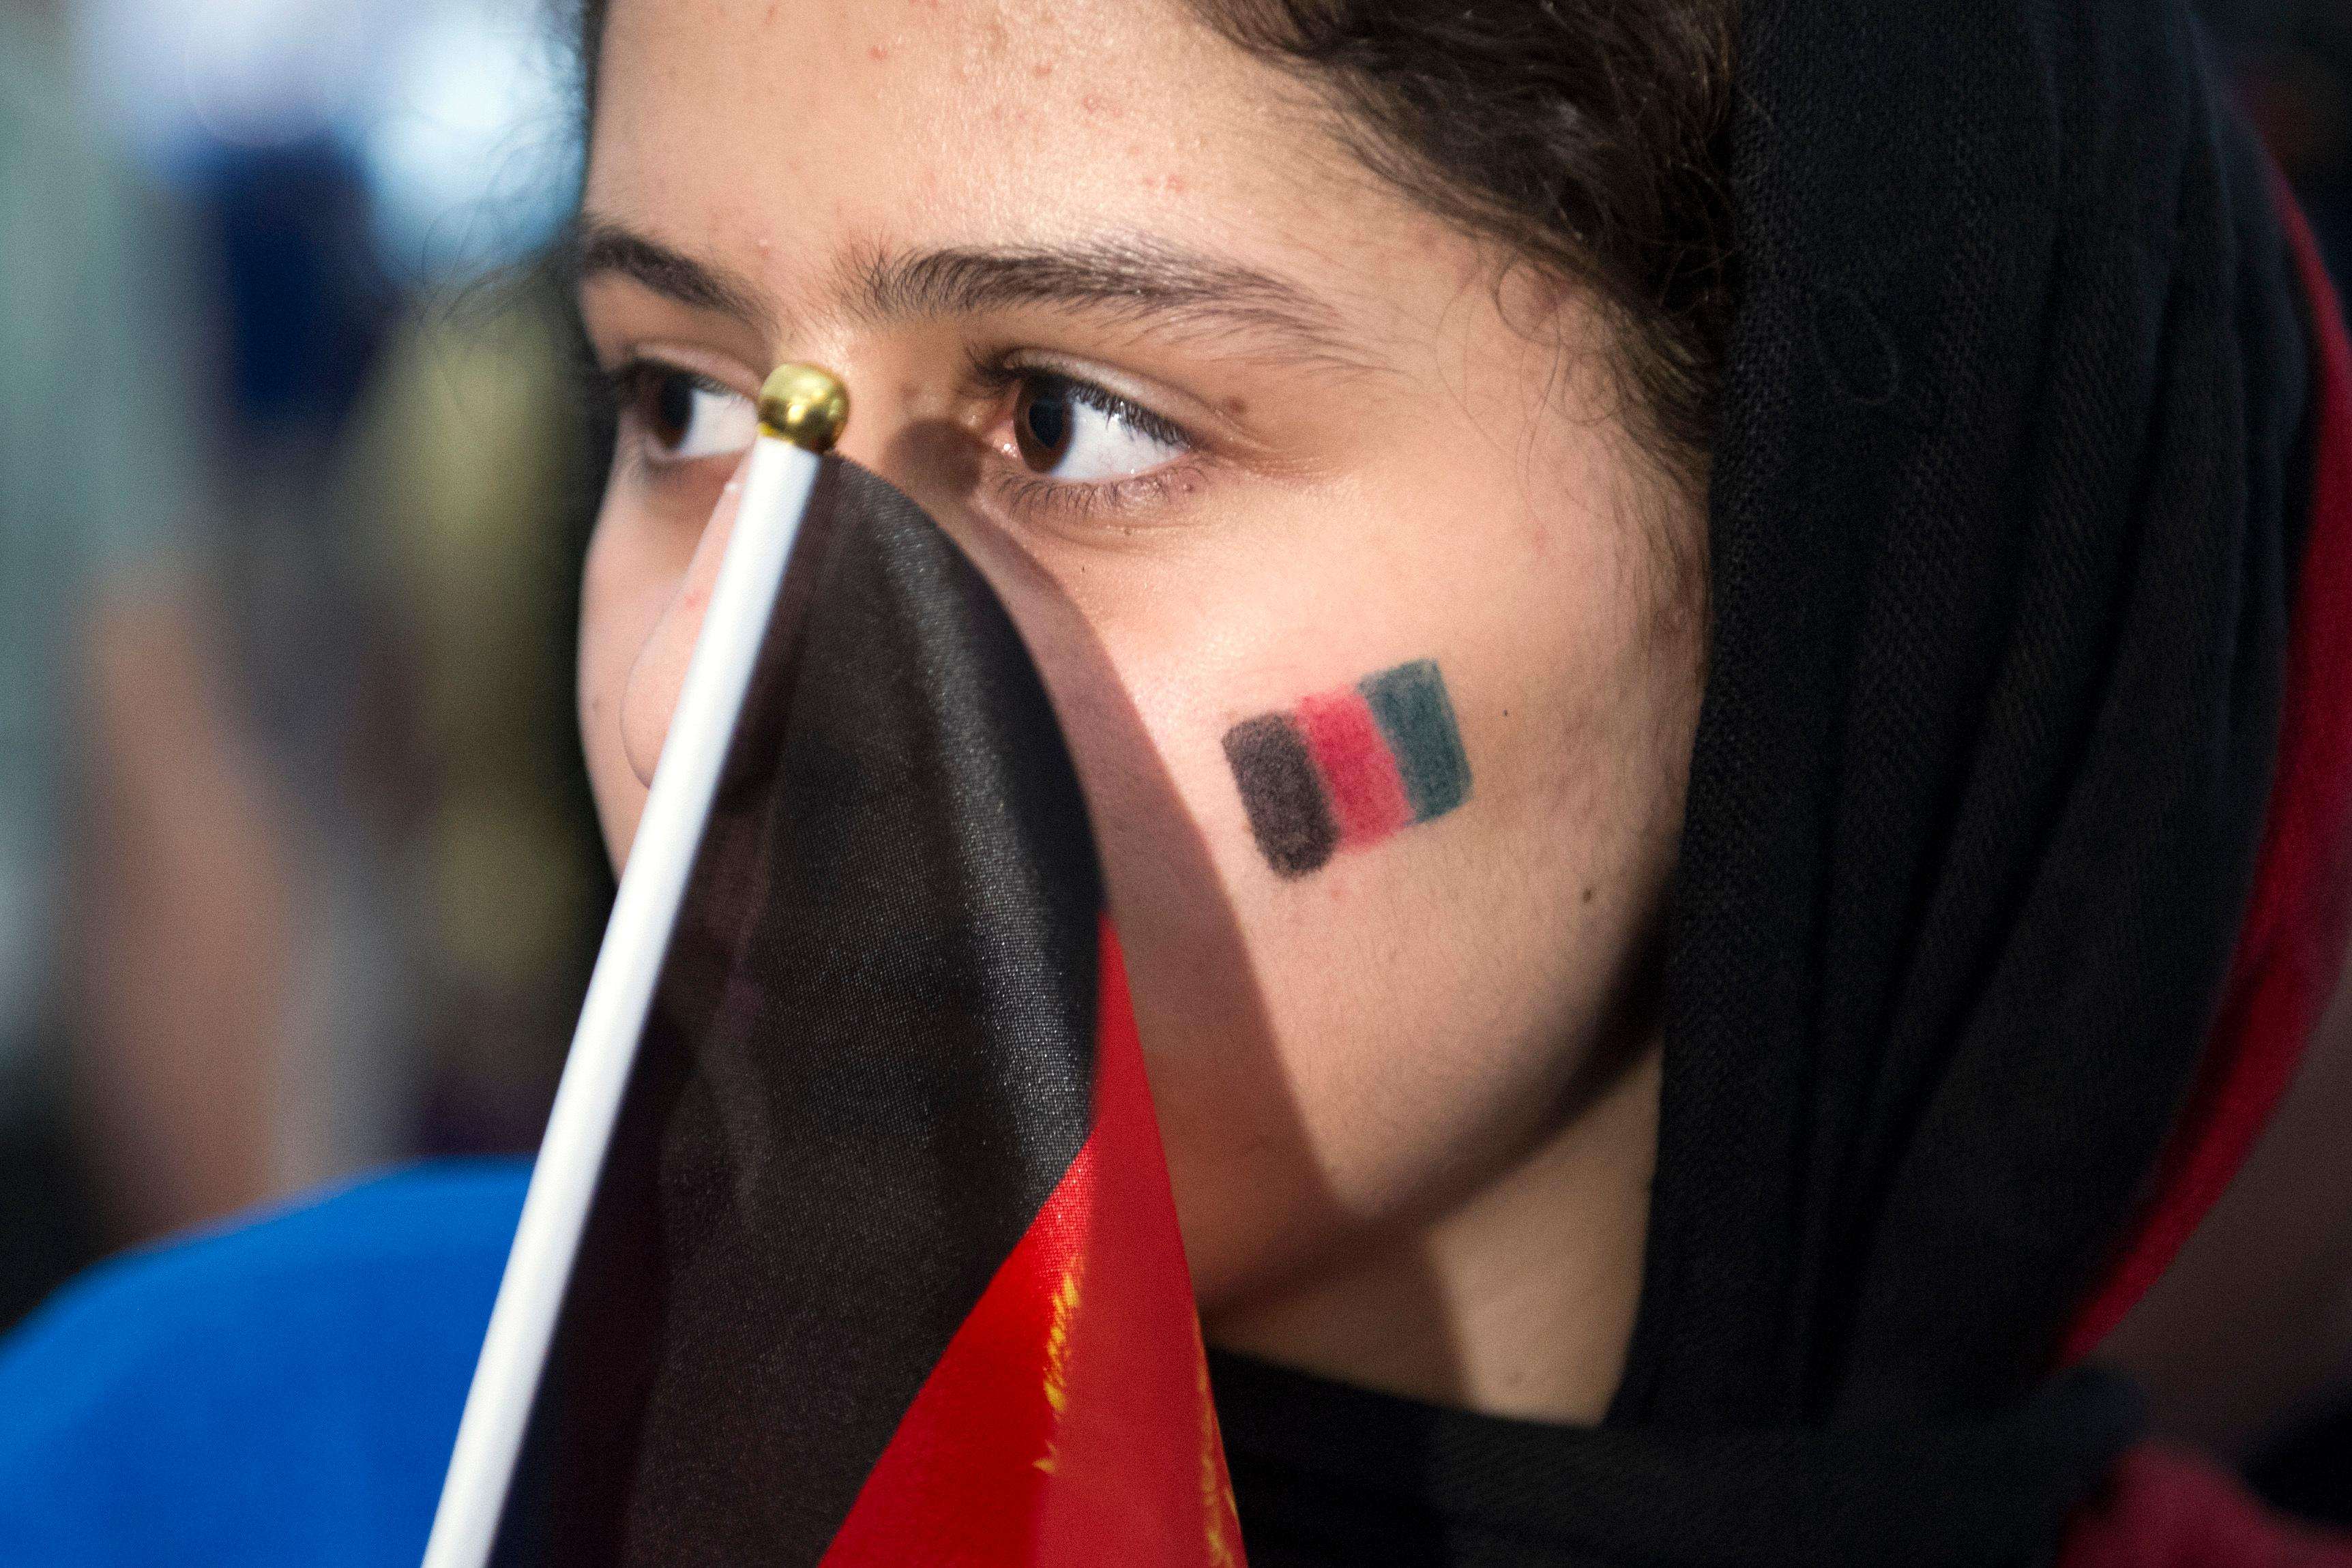 Afghanistan team member Kwasar Rashan holds the Afghan flag while waiting for the opening ceremony march of the FIRST Global Challenge 2017, in Washington, Sunday, July 16, 2017. Twice rejected for U.S. visas, the all-girls robotics team from Afghanistan arrived in Washington early Saturday after an extraordinary, last-minute intervention by President Donald Trump. (AP Photo/Cliff Owen)